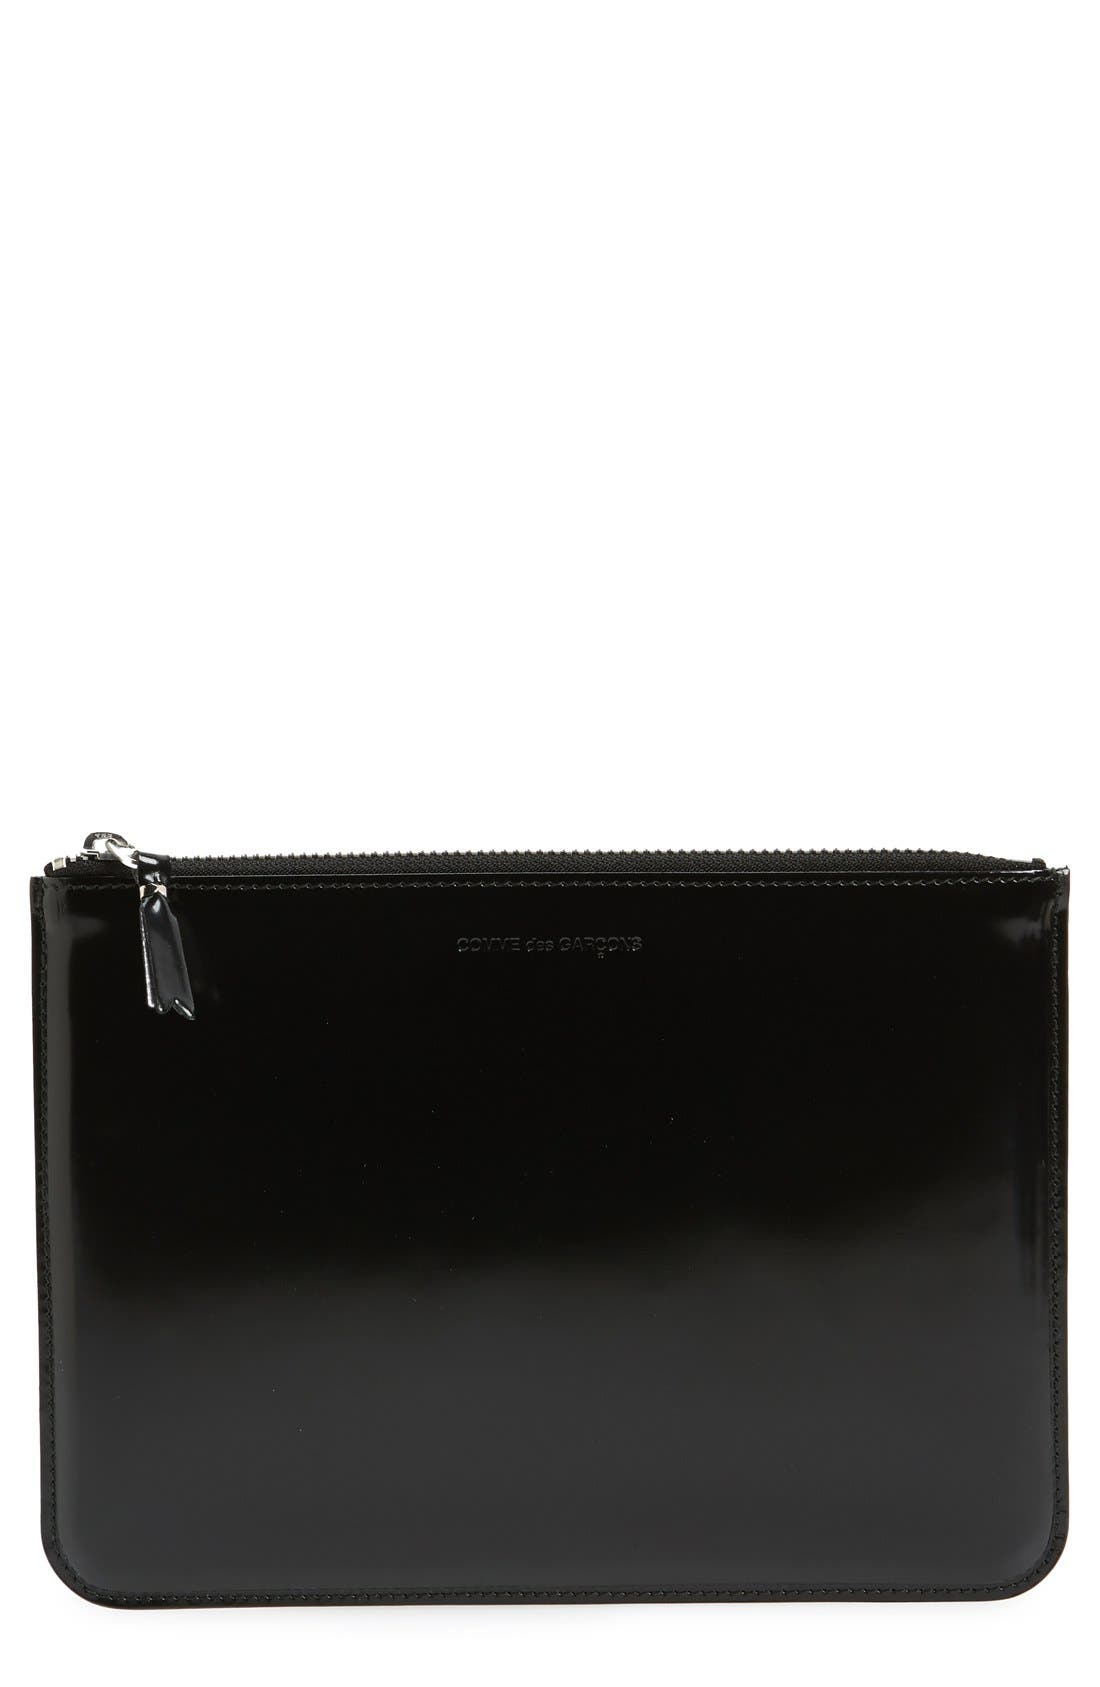 COMME DES GARÇONS Large Top Zip Leather Pouch, Main, color, SILVER